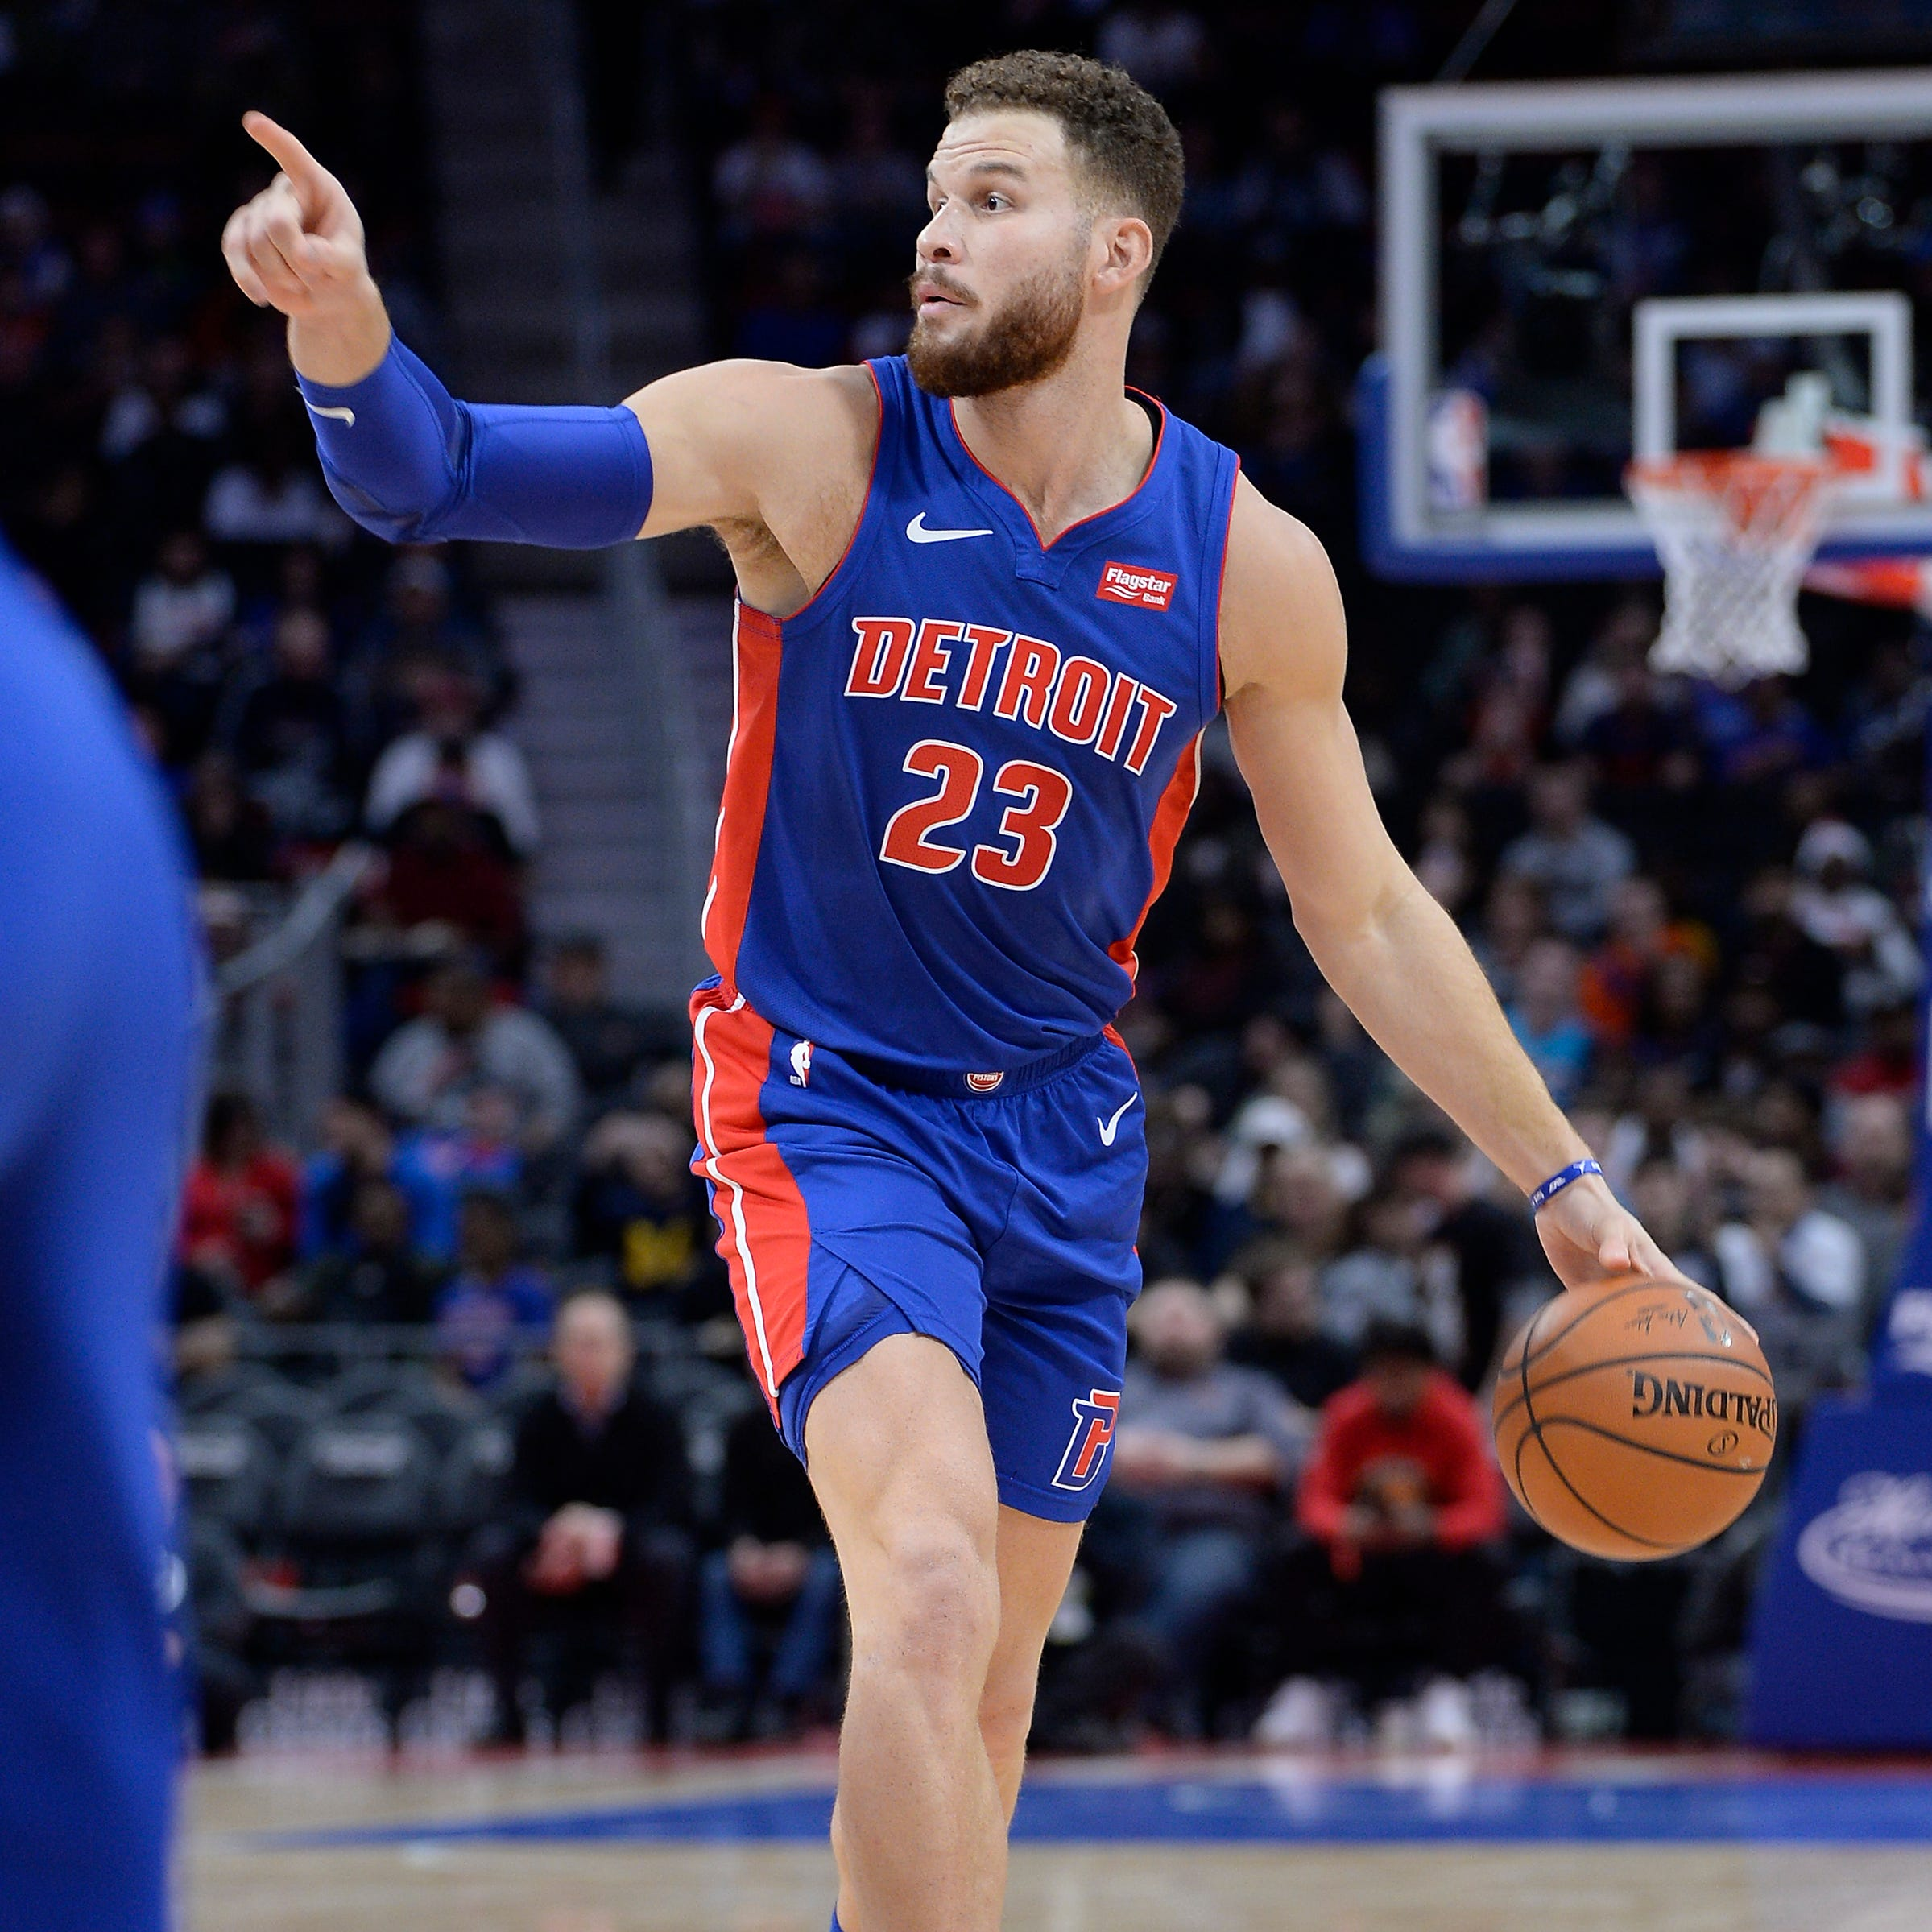 'We'll find out:' Pistons' Blake Griffin remains questionable for Game 2